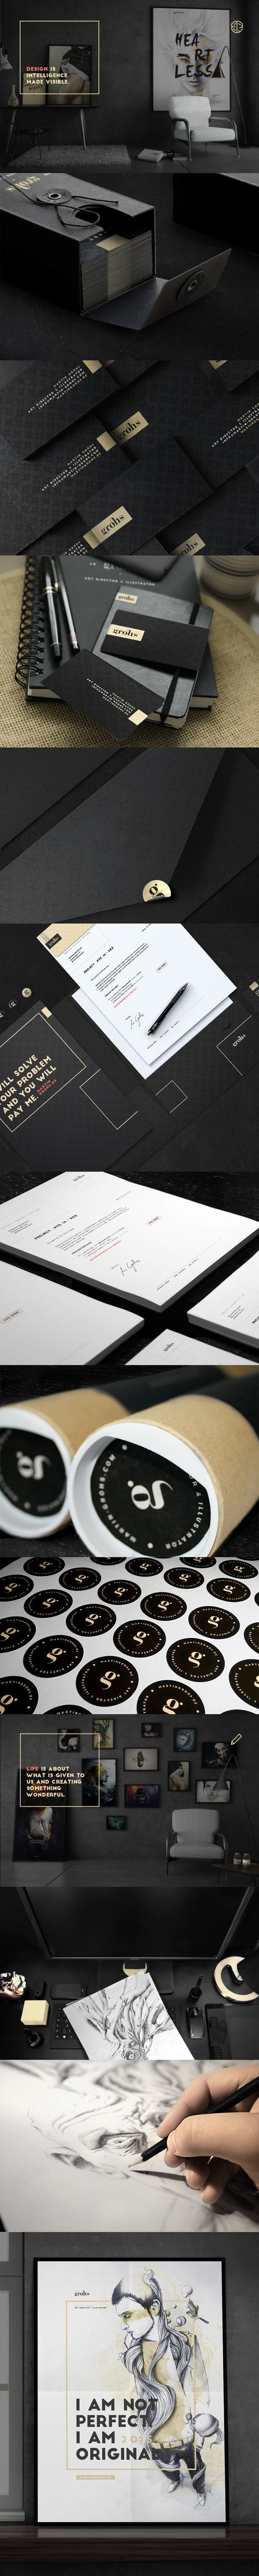 corporate identity . grohs . 2015